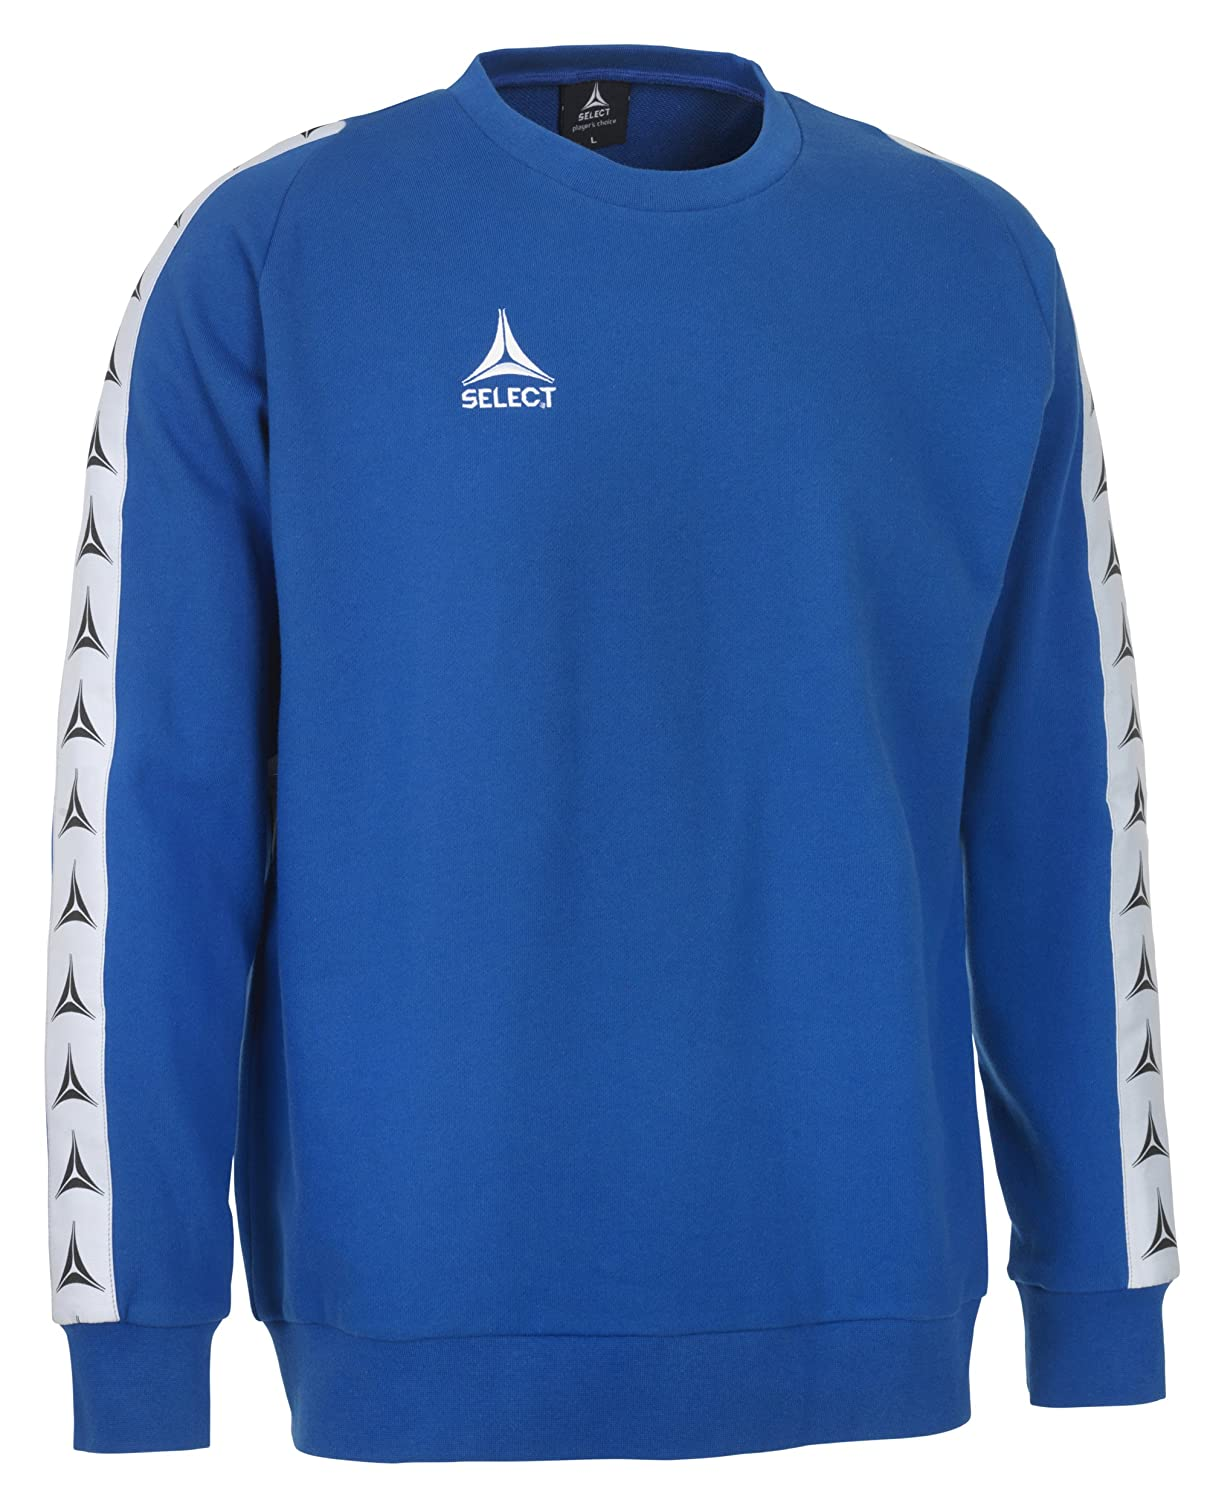 TALLA 2XL. Select Sweatshirt Ultimate - Camiseta